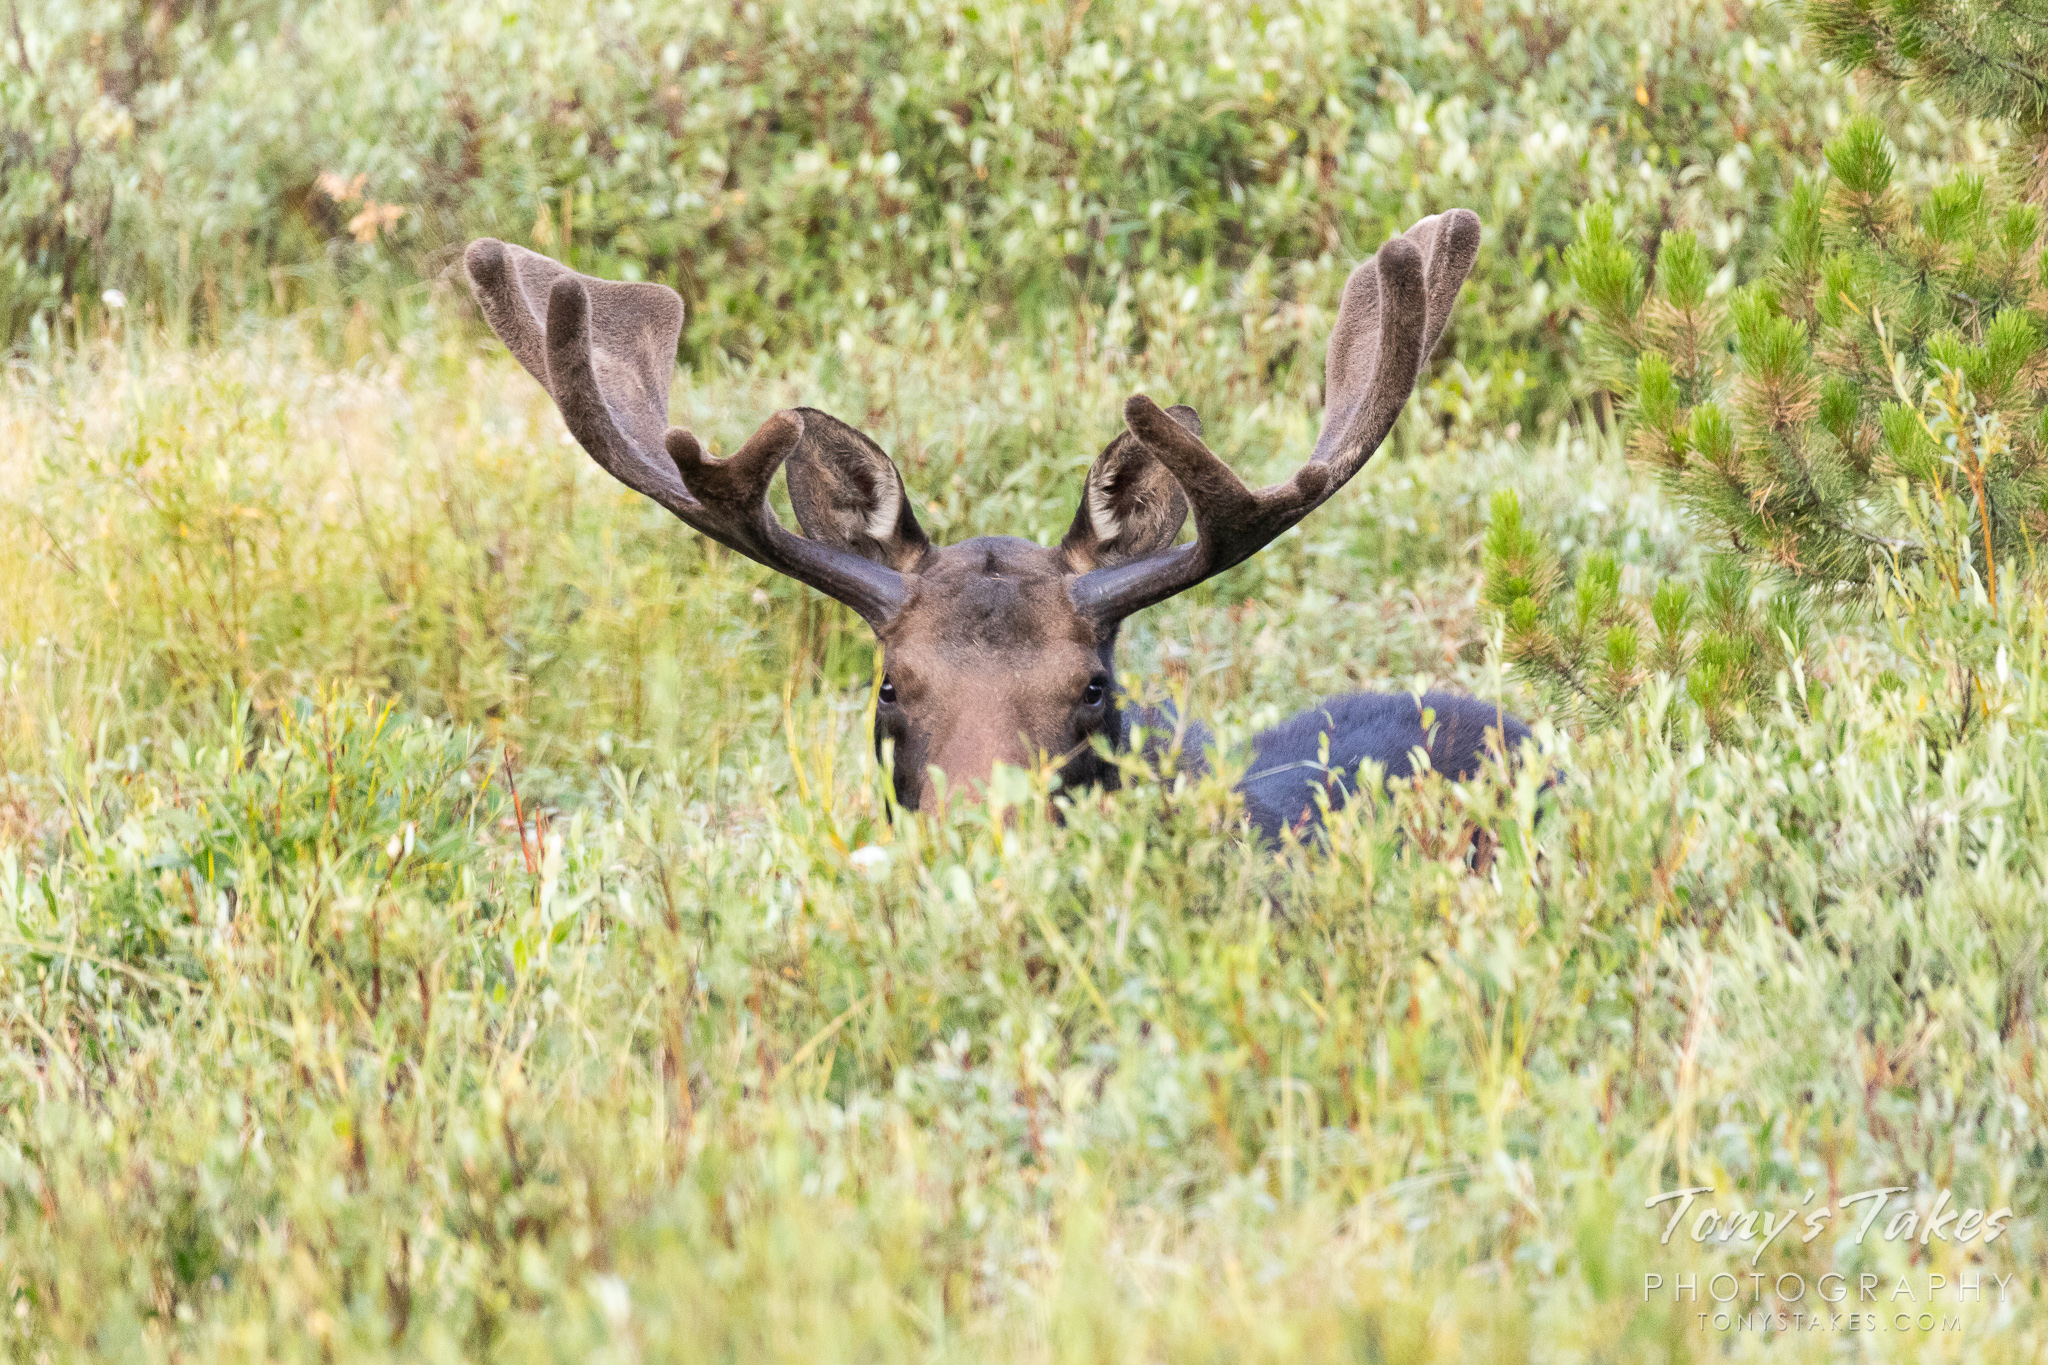 Playing peek-a-boo with a 1,000 pound Moose bull